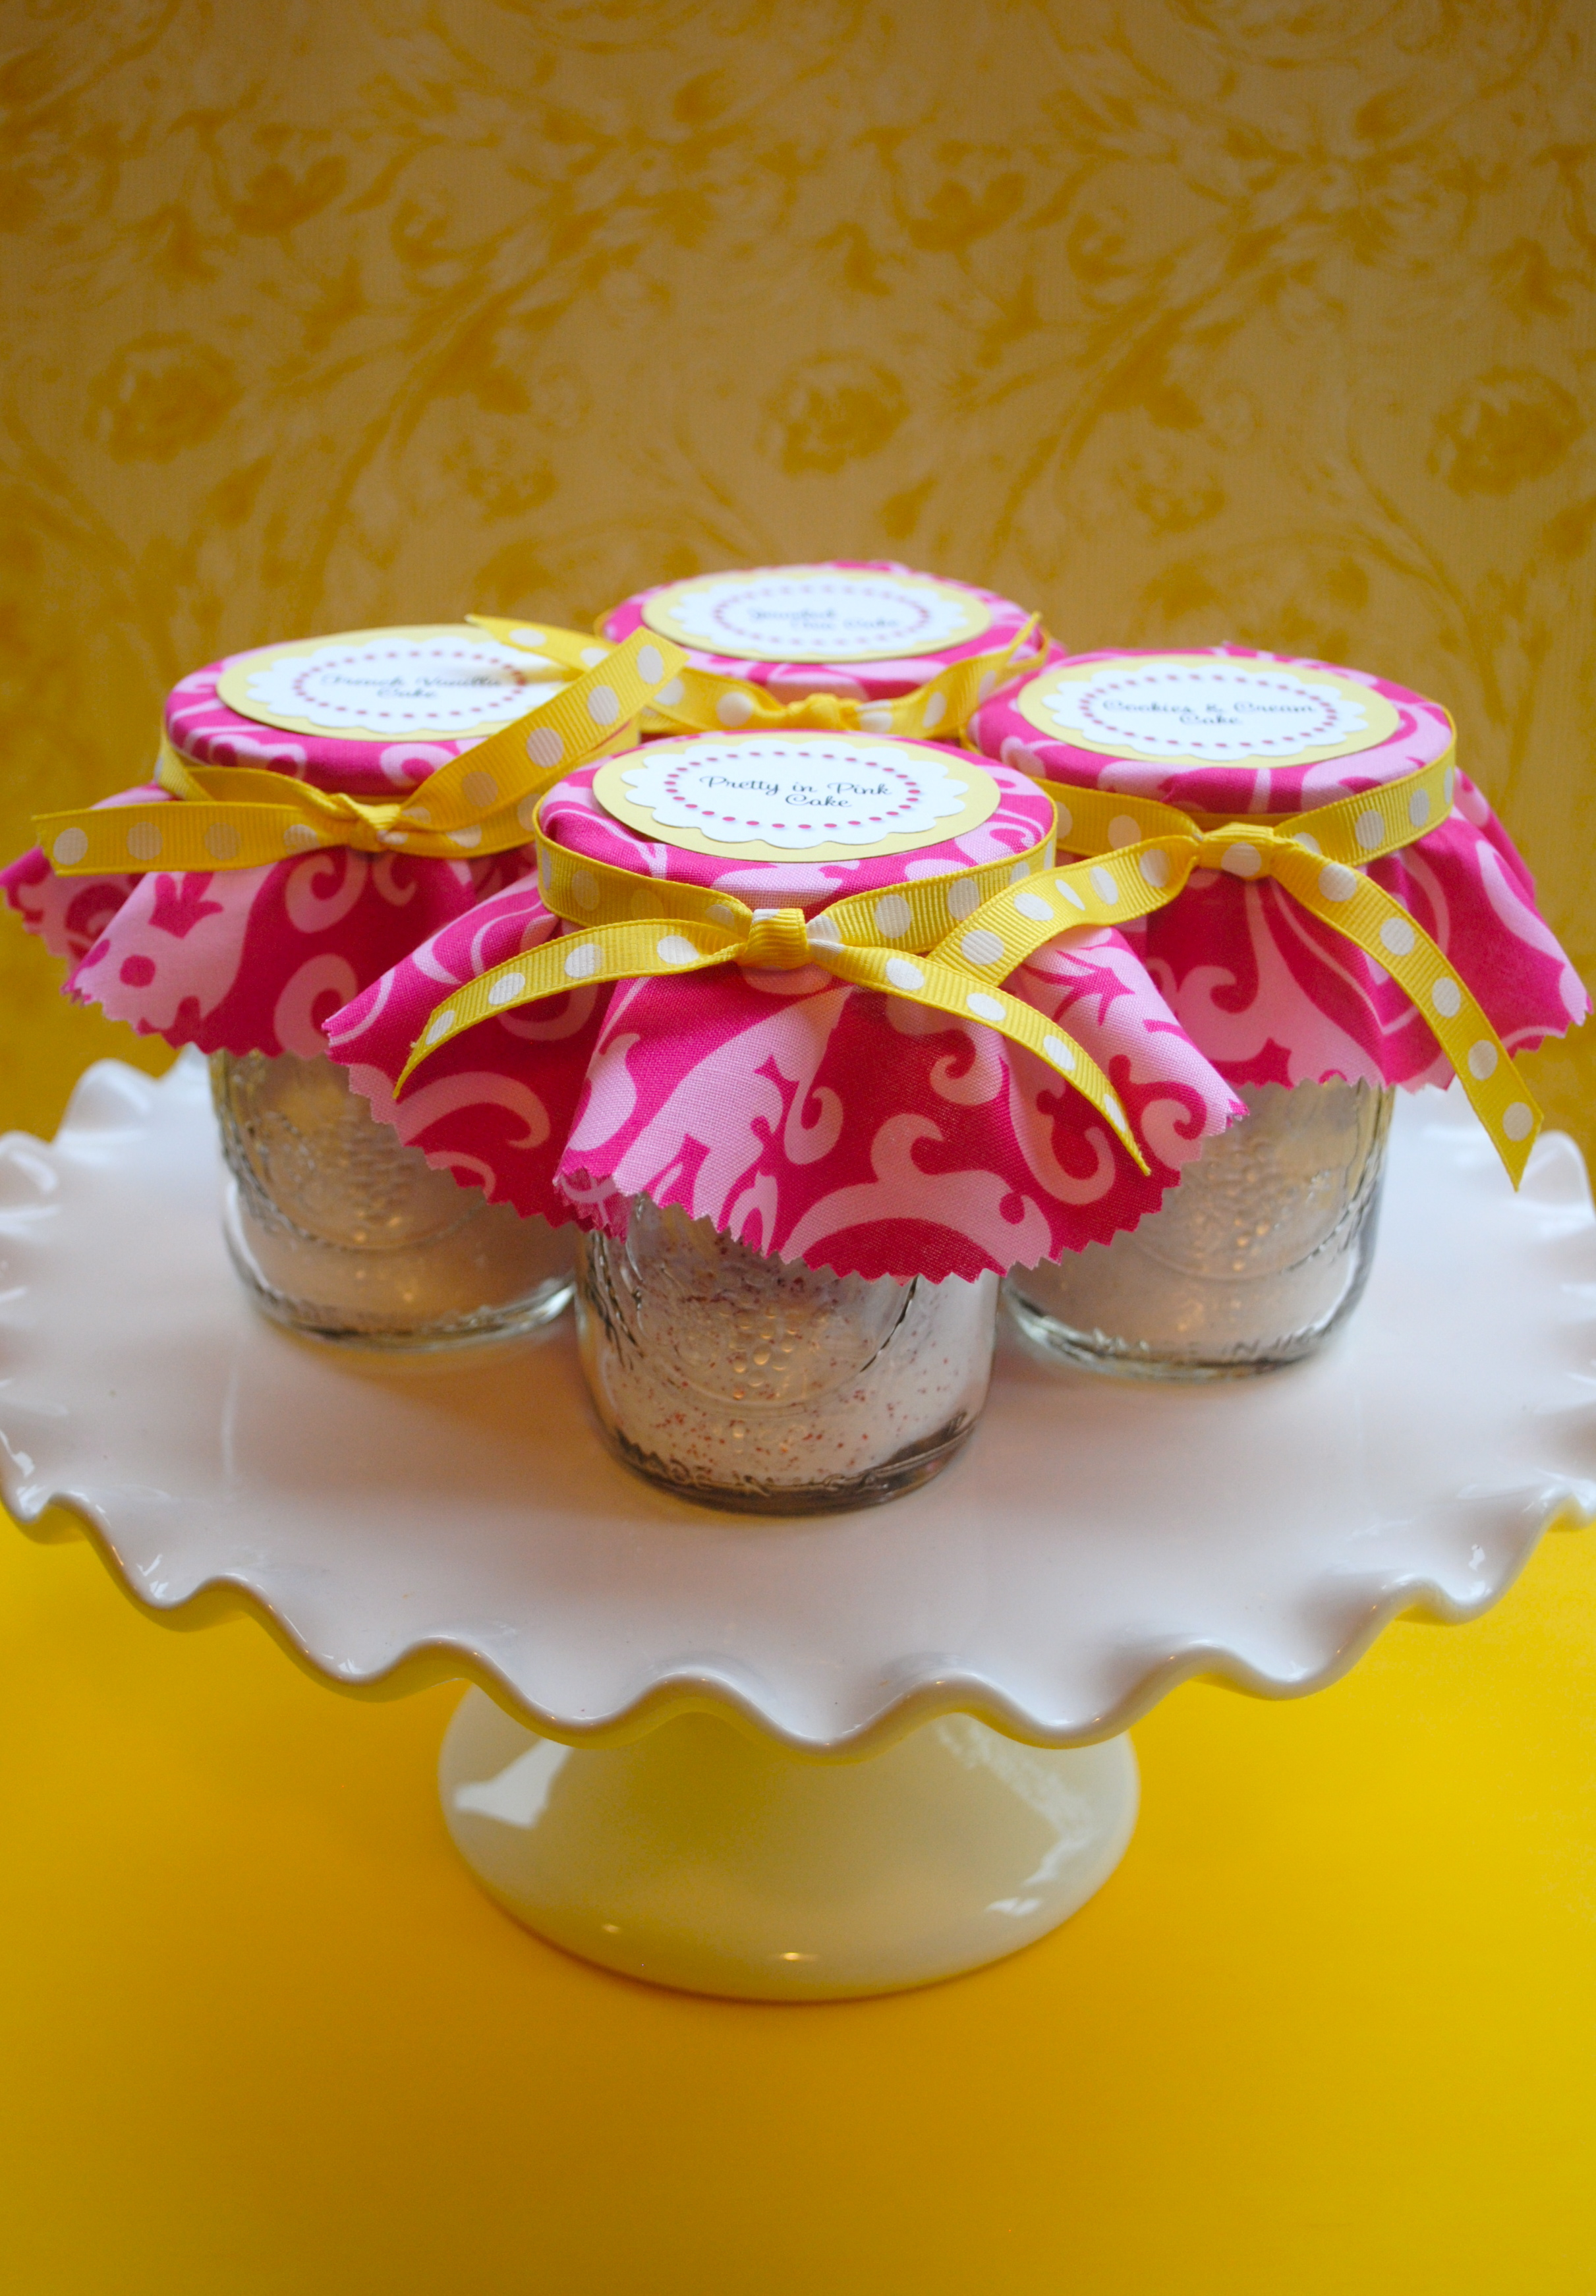 Home Made Easy Bake Oven Cake Mix Mason Jar Packaging The Party Teacher